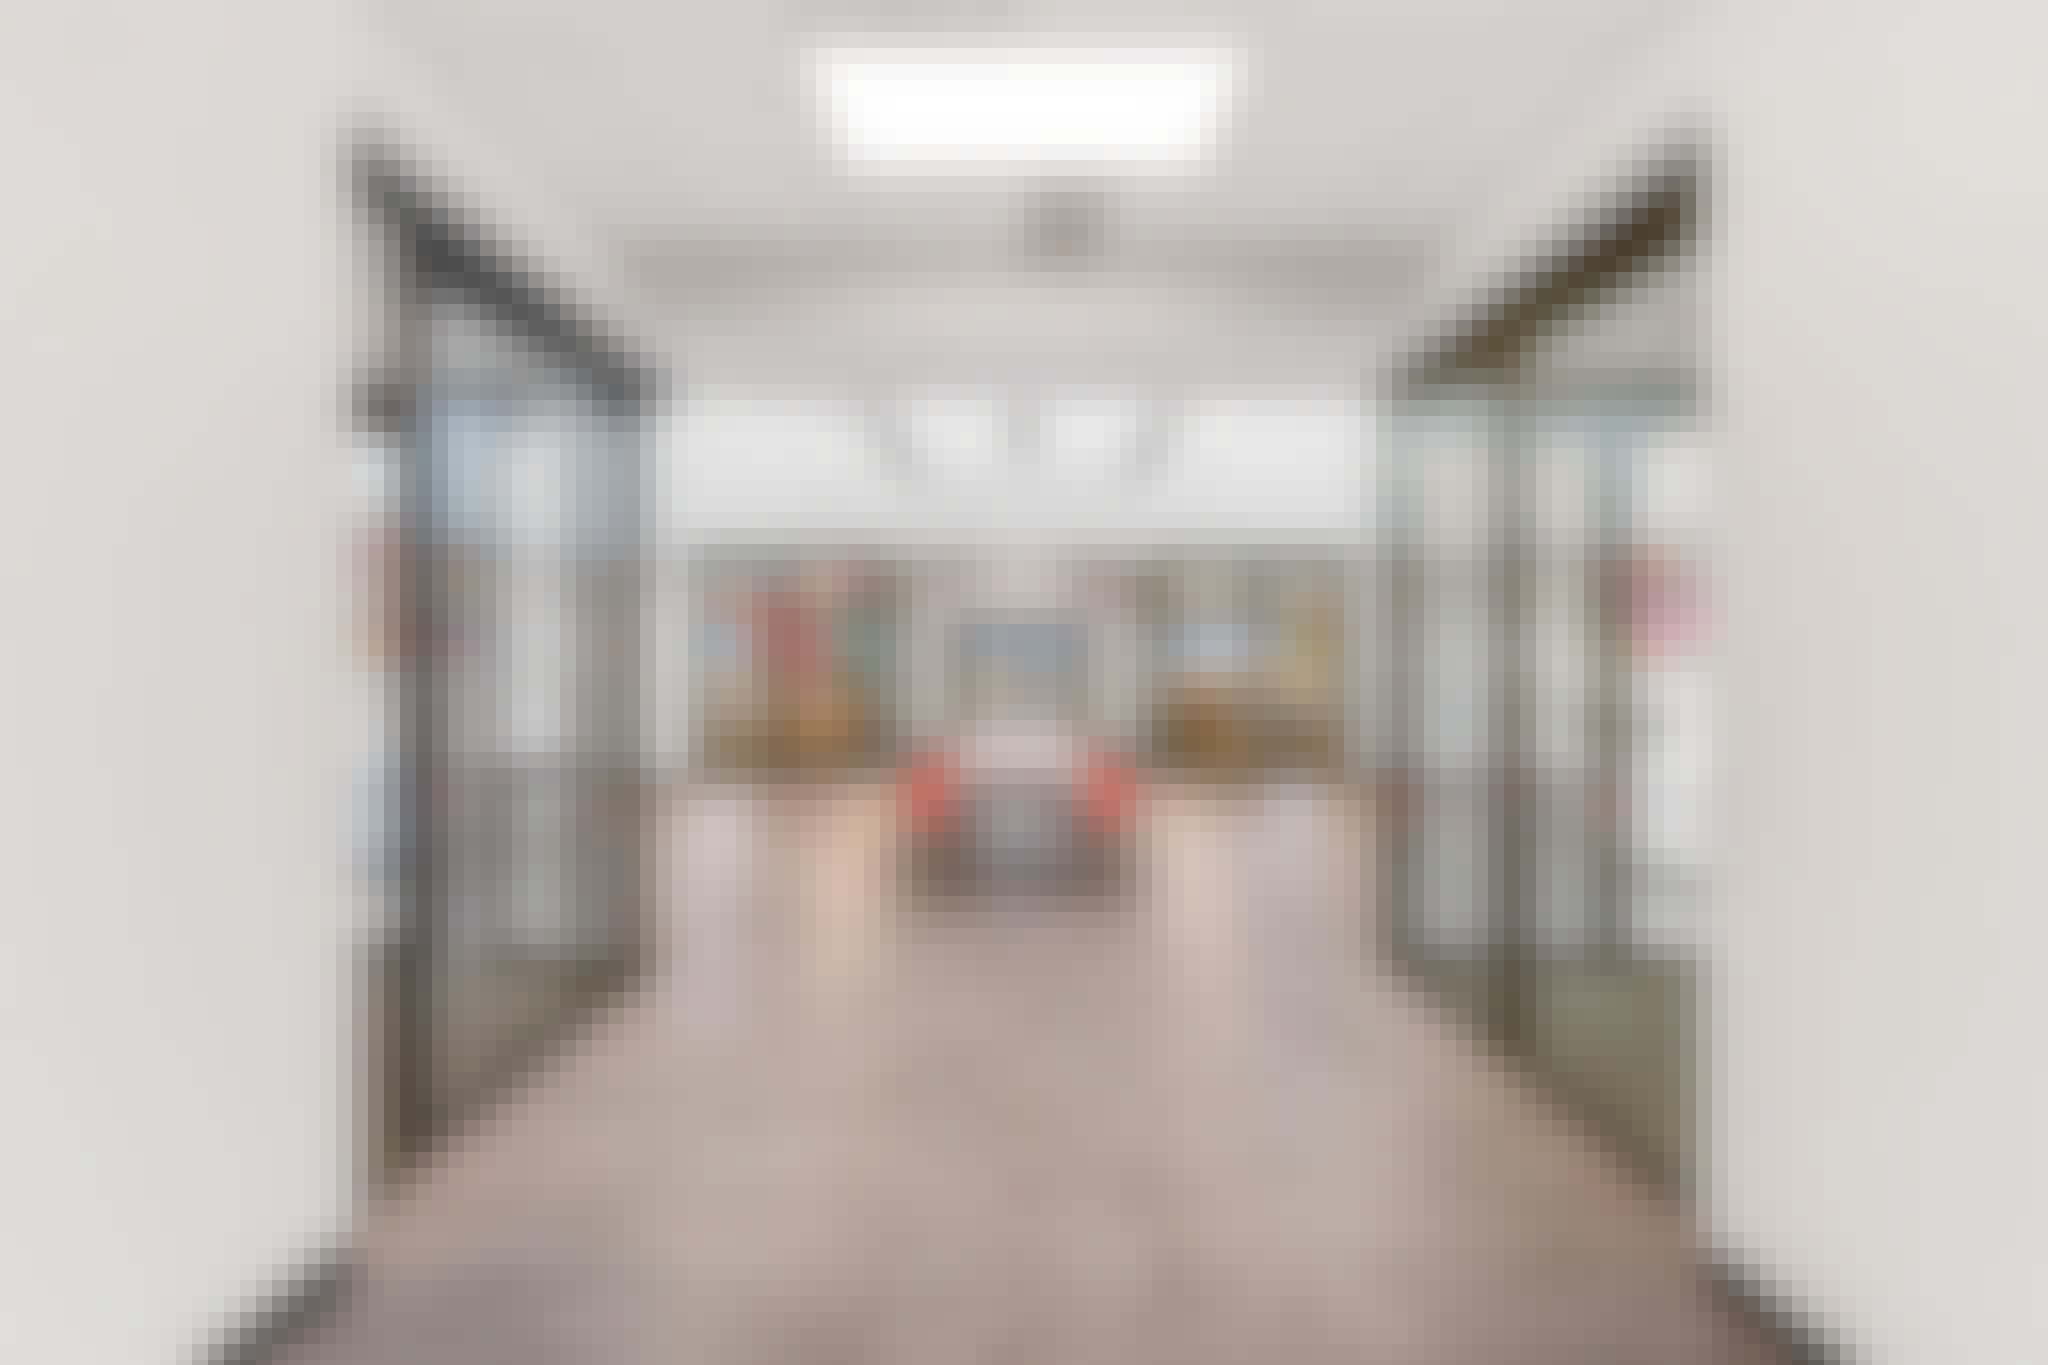 learning hub design in schools with NanaWall sliding glass walls